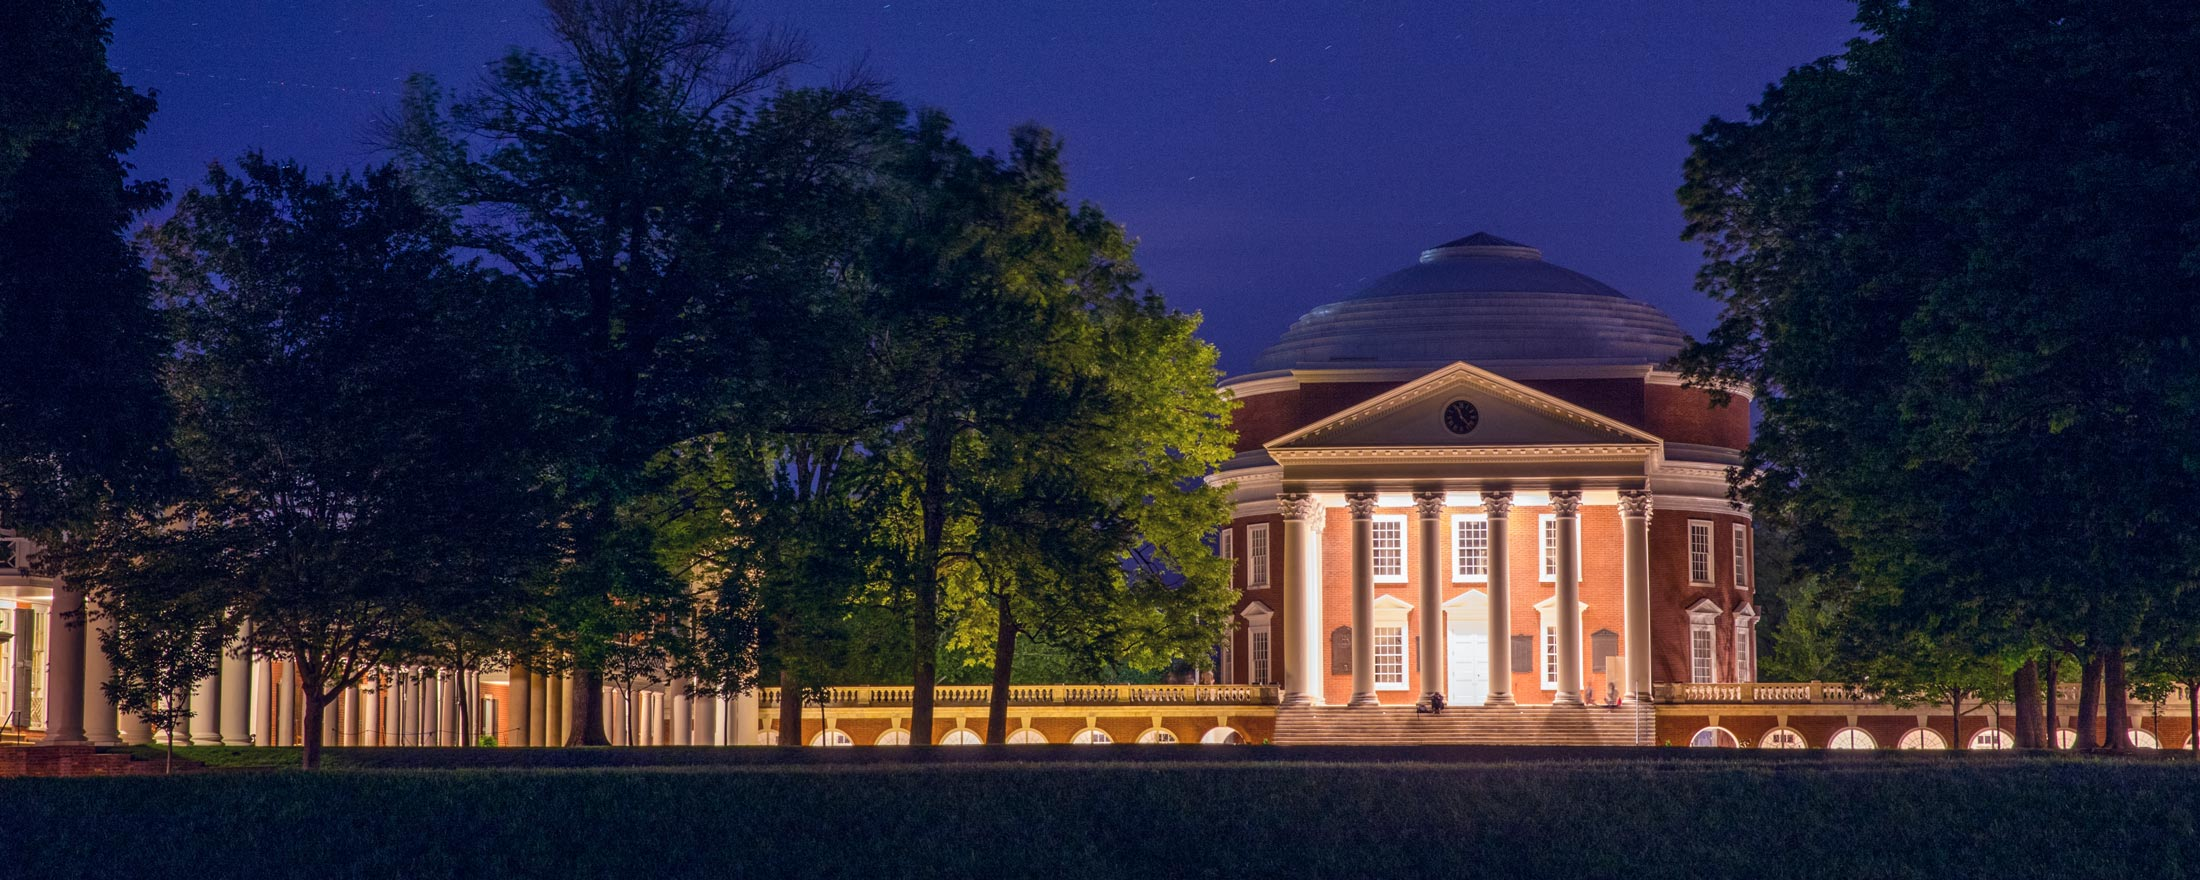 UVA rotunda